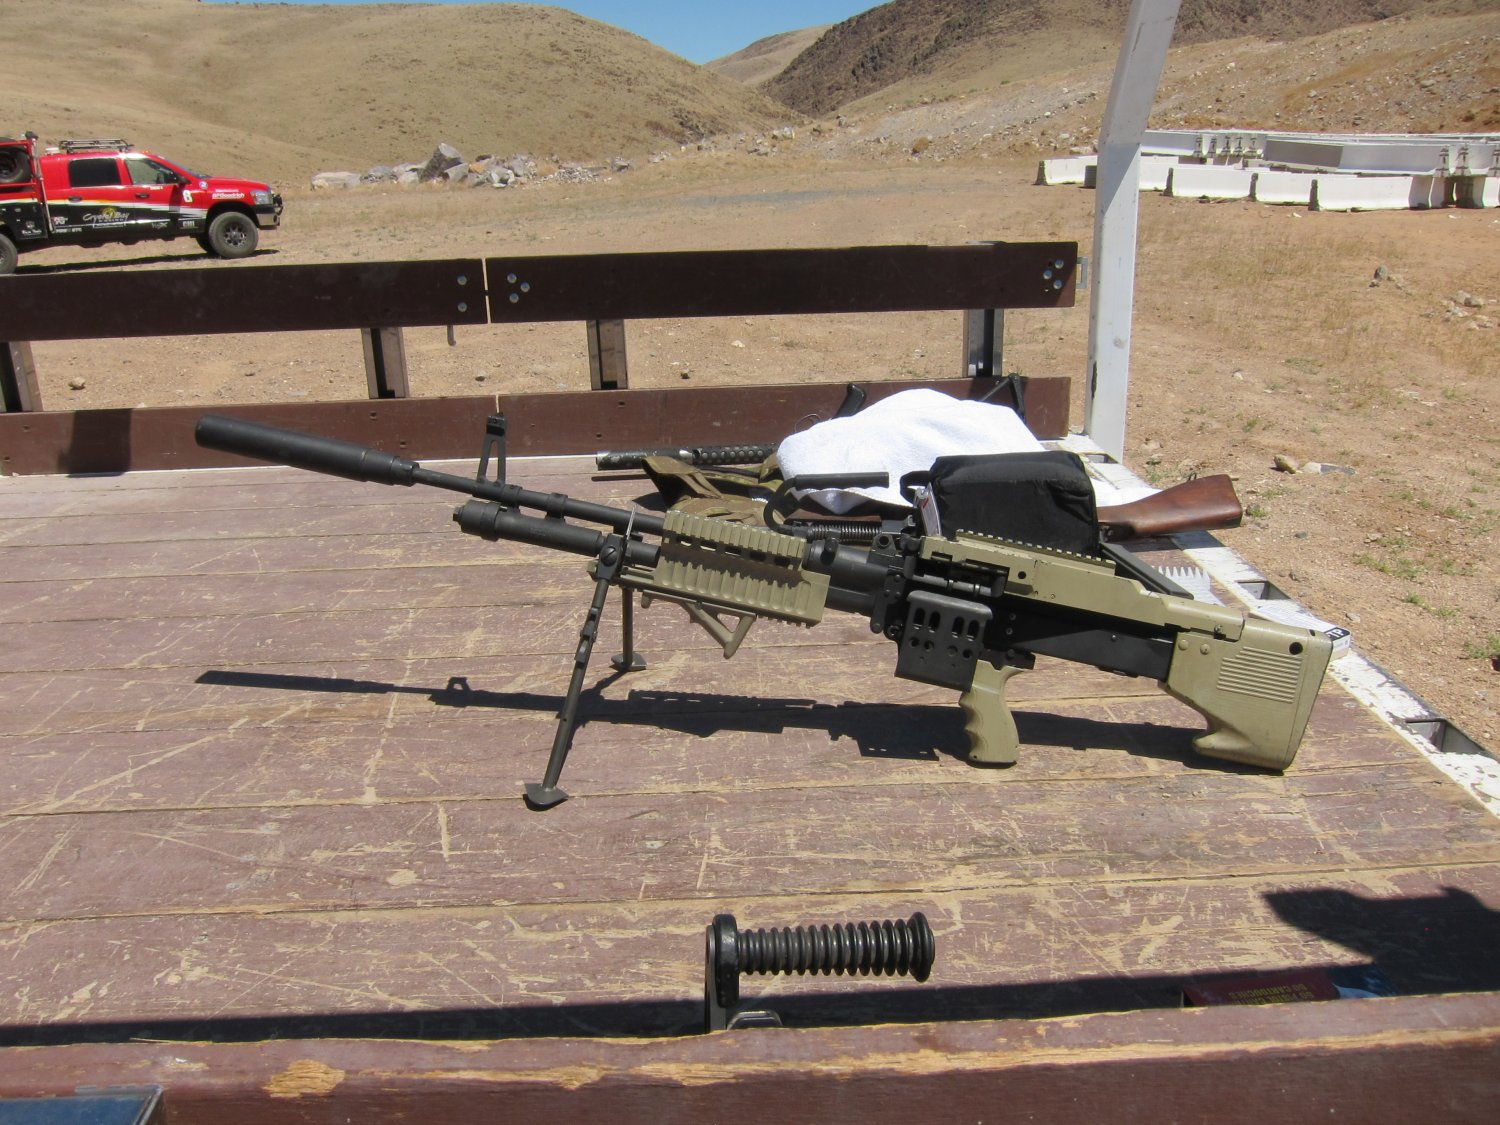 U.S. Ordnance Mk43 Mod 1 M60E4 Medium Machine Gun 7.62mm MMG Future Version 10 <!  :en  >U.S. Ordnance Mk43 Mod 1/M60E4 Commando 7.62mm NATO Medium Machine Gun (MMG) for Special Operations Forces (U.S. Navy SEALs): Latest Version Weapon Gets Test Fired at the Range (Video!) <!  :  >